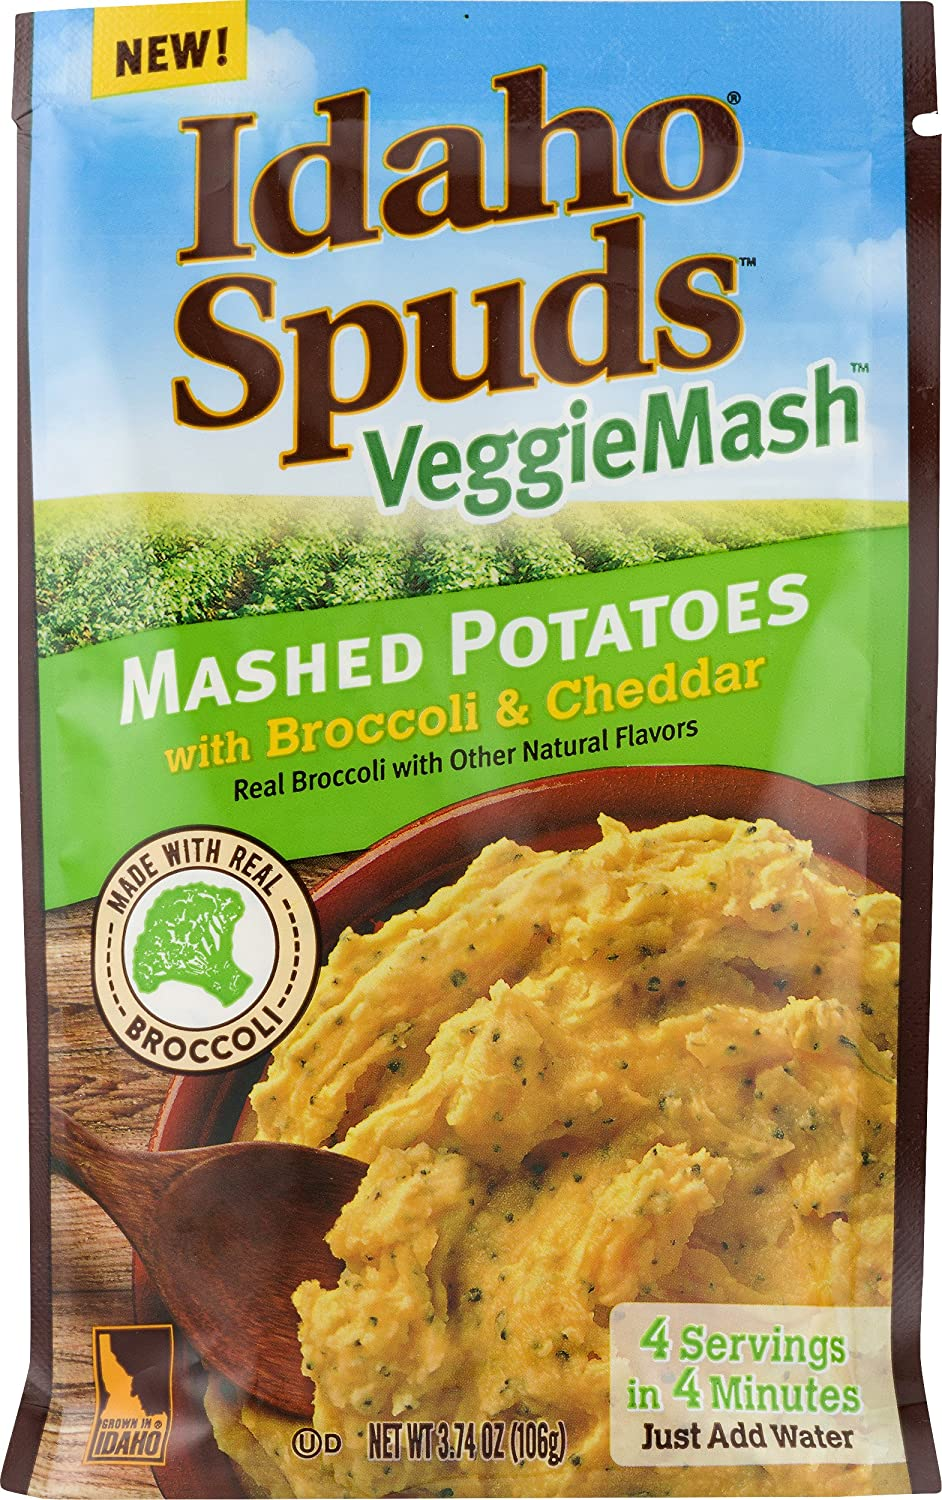 Idaho Spuds Veggie Mash, Cauliflower Butter Broccoli & Cheese Mashed Potatoes, 10 Count